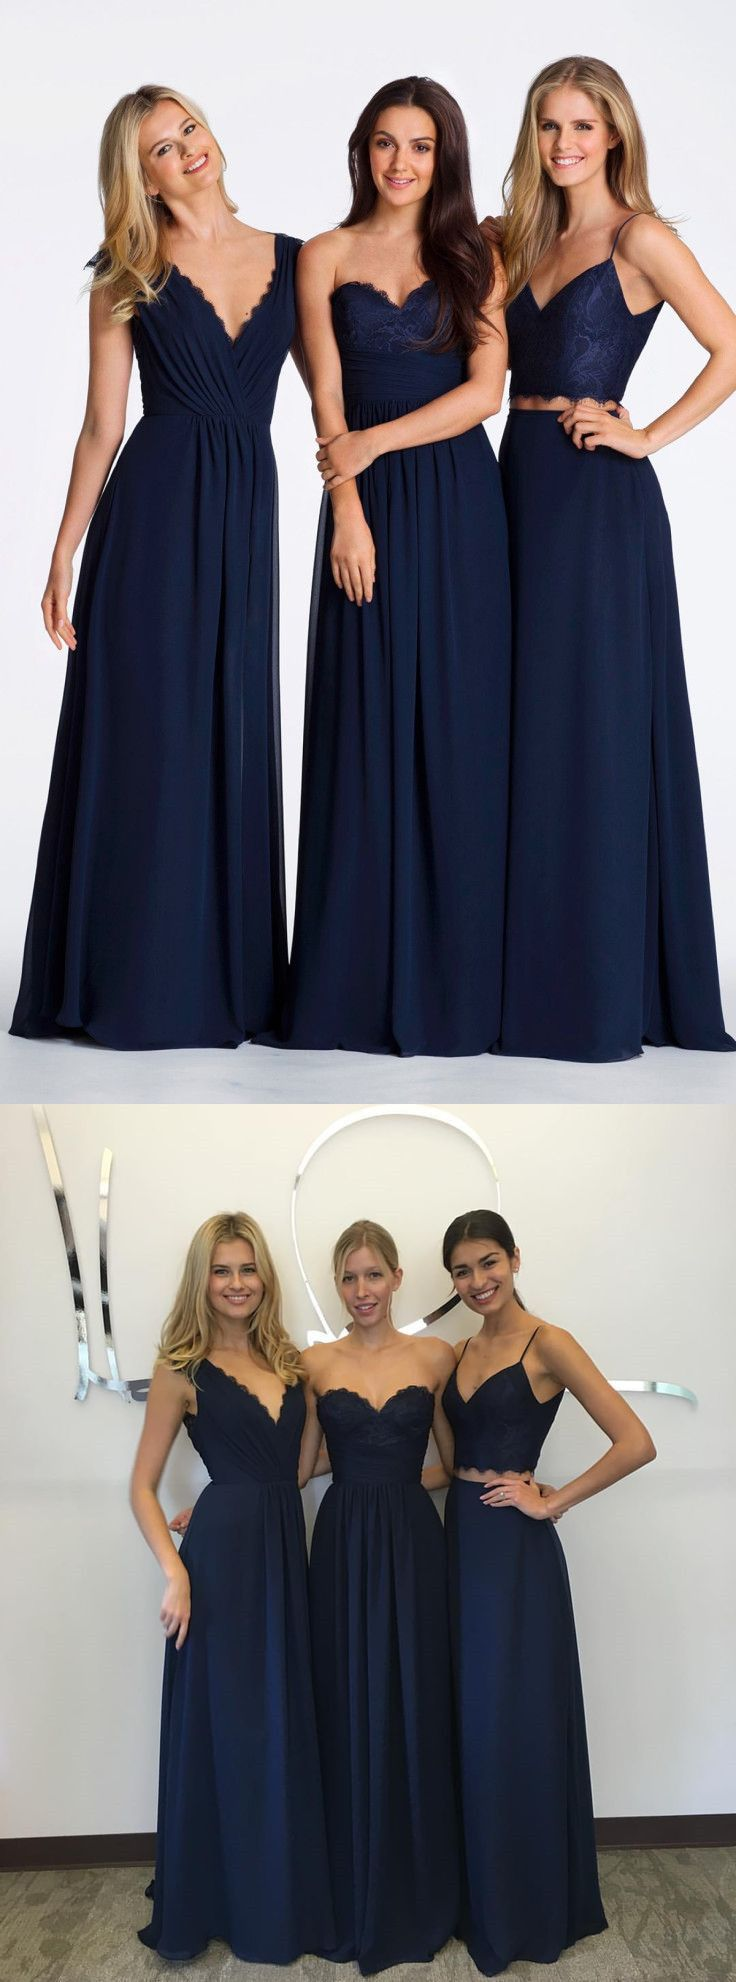 long bridesmaid dresses, navy blue bridesmaid dresses, 2016 bridesmaid dresses…